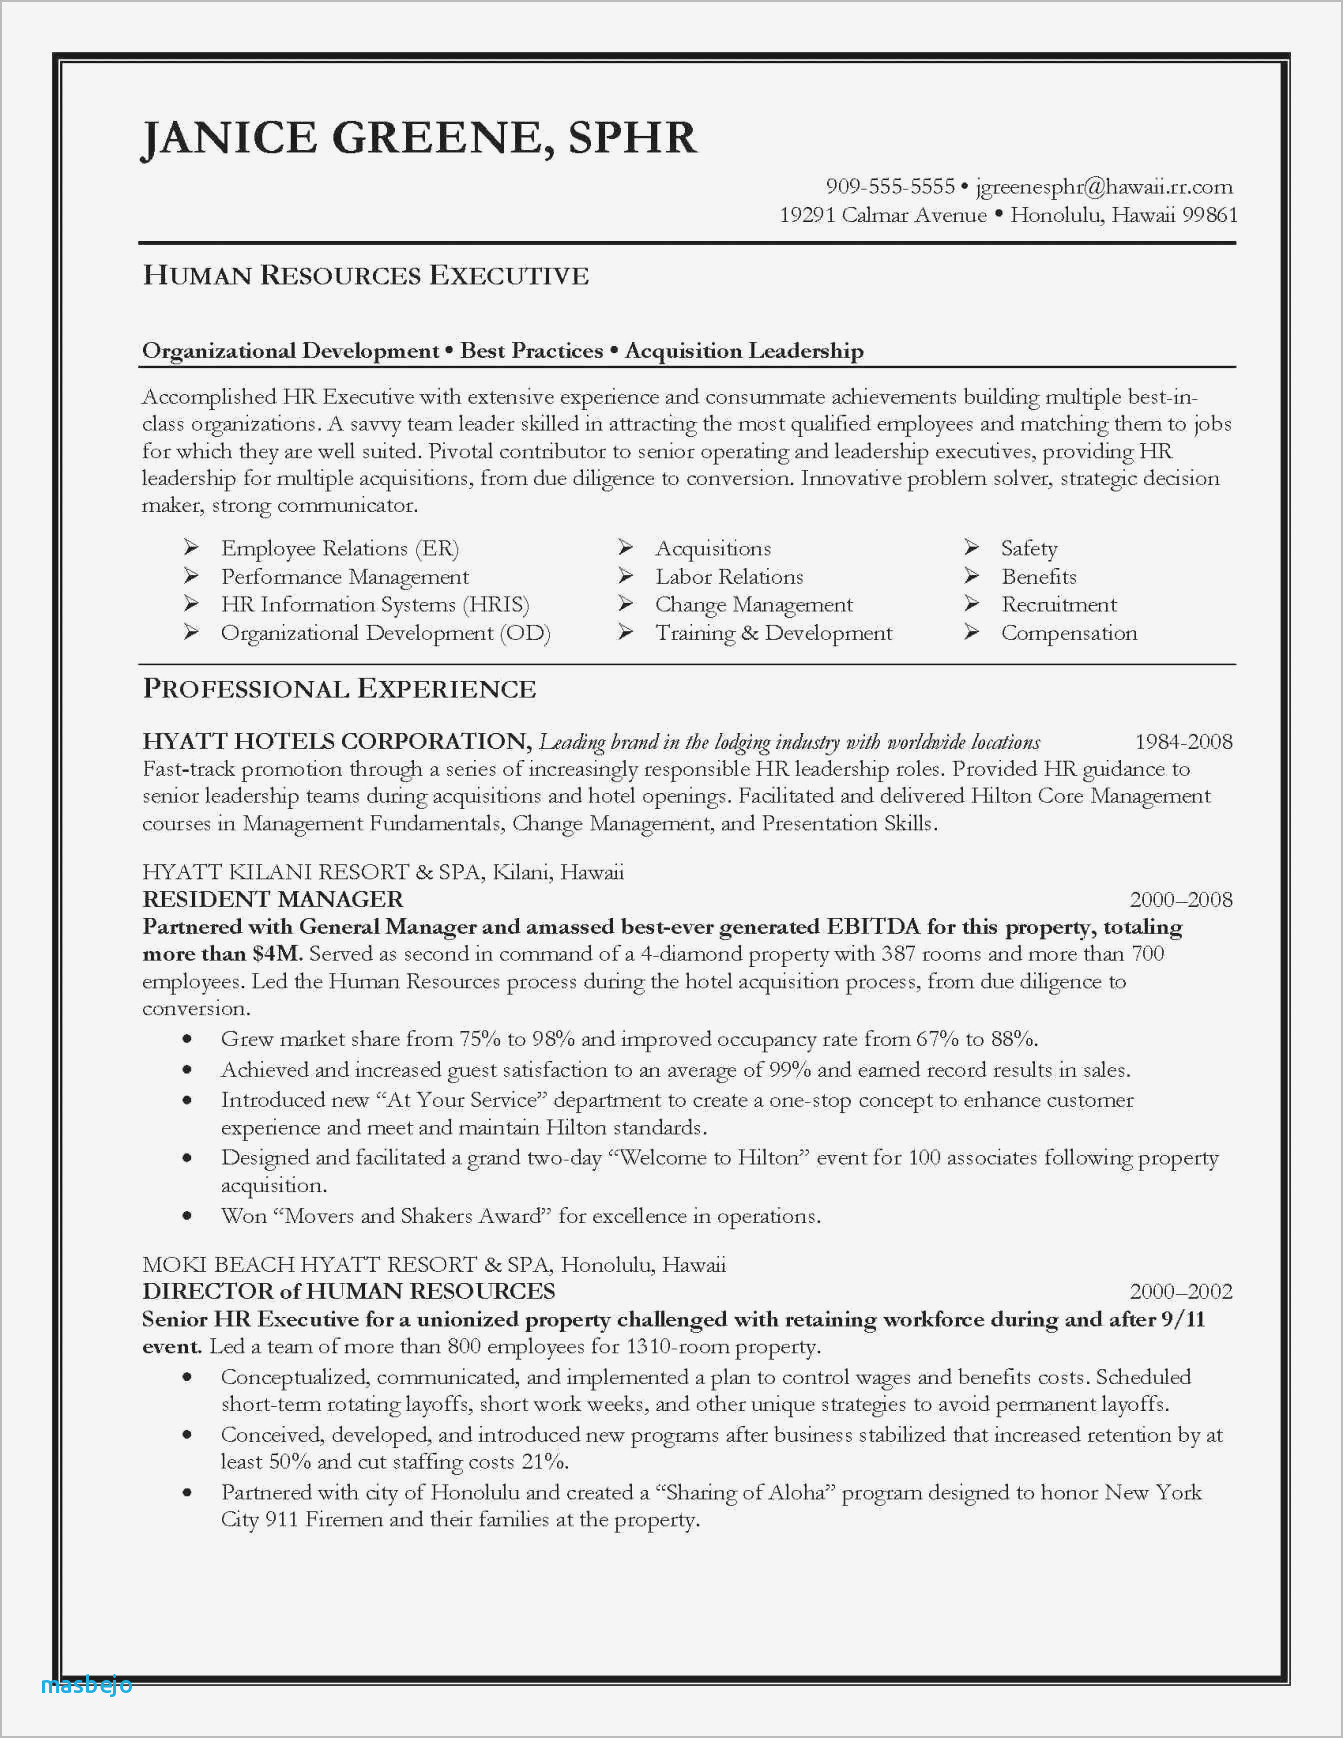 12 landscape job description for resume collection